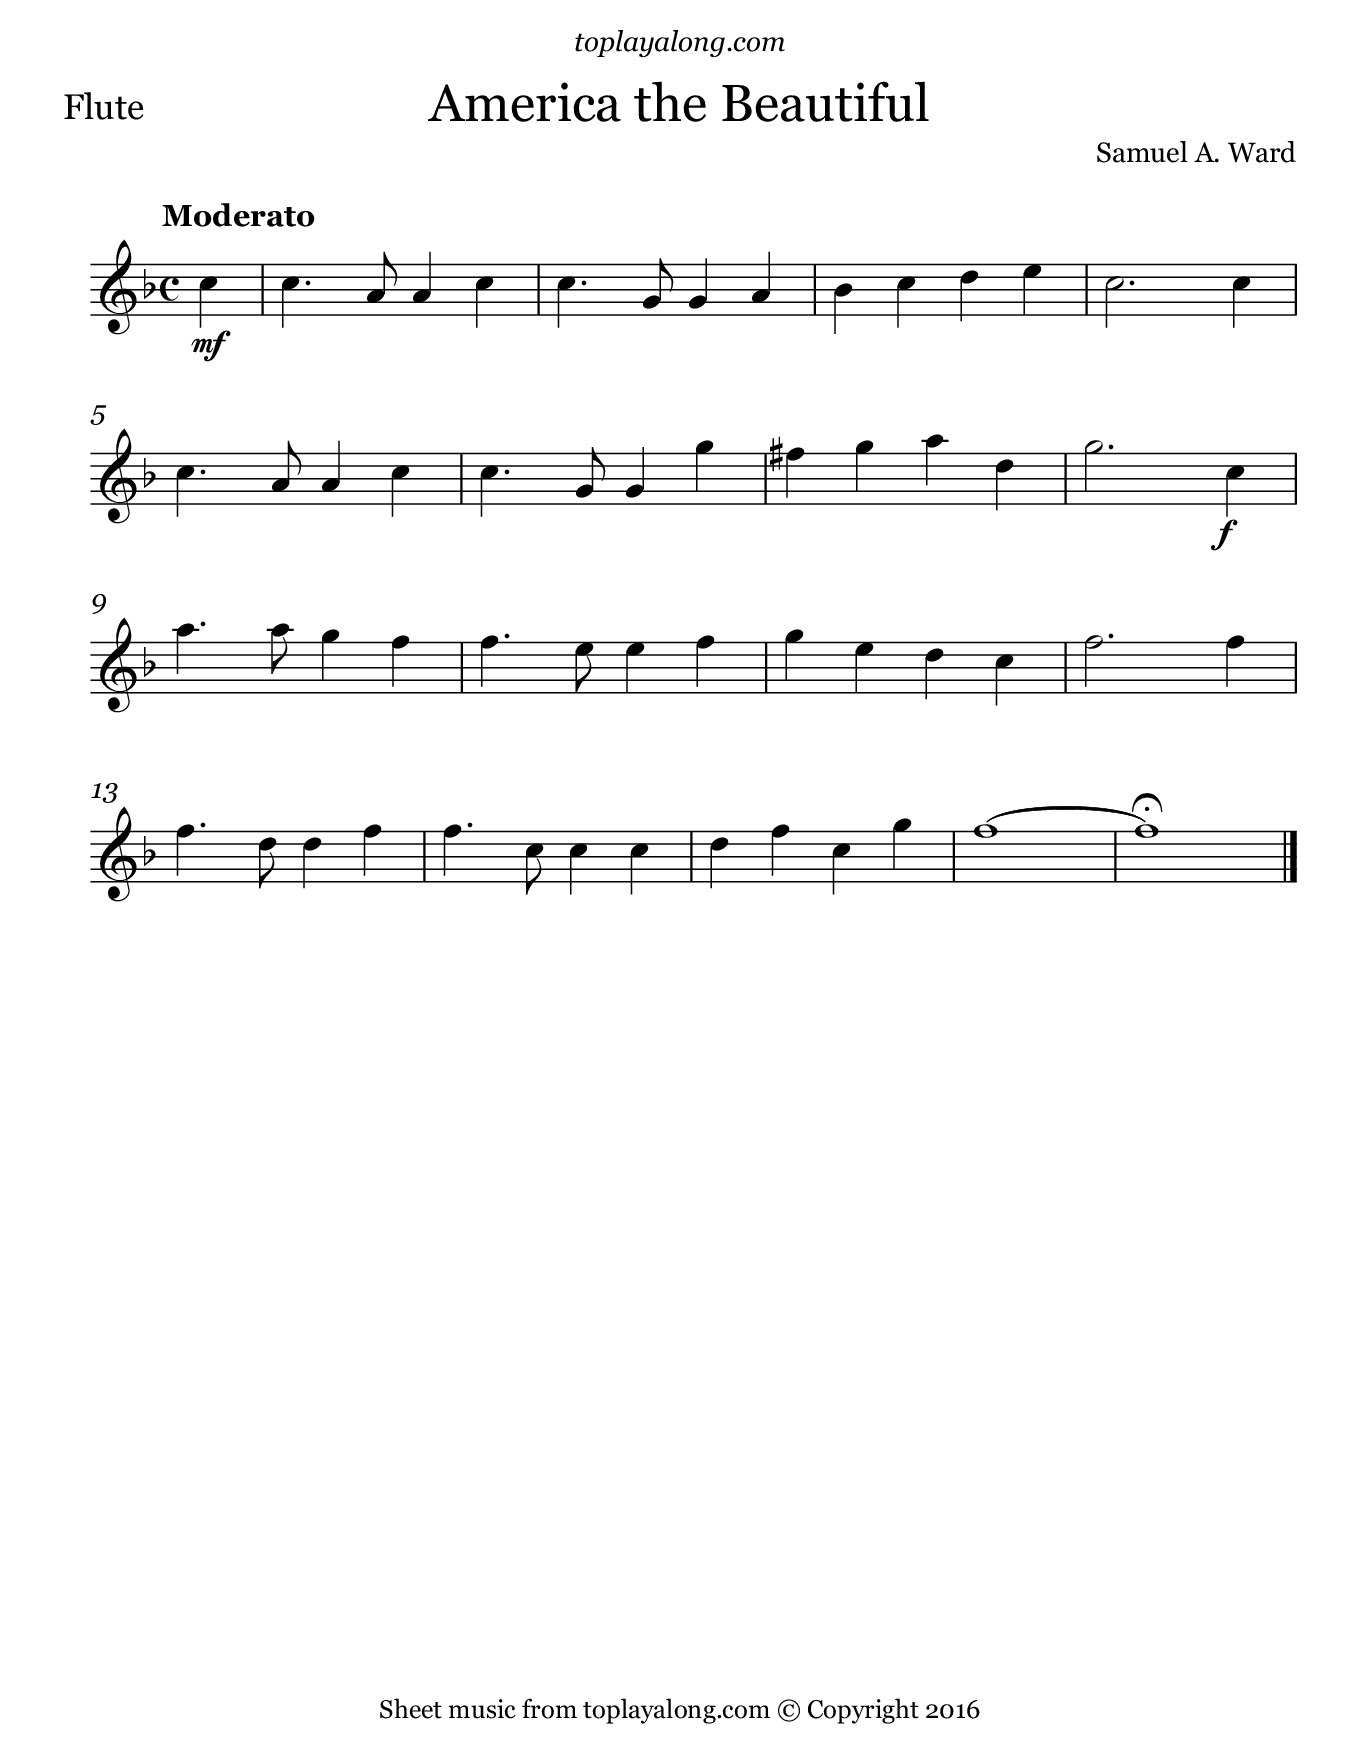 America the Beautiful. Sheet music for Flute, page 1.